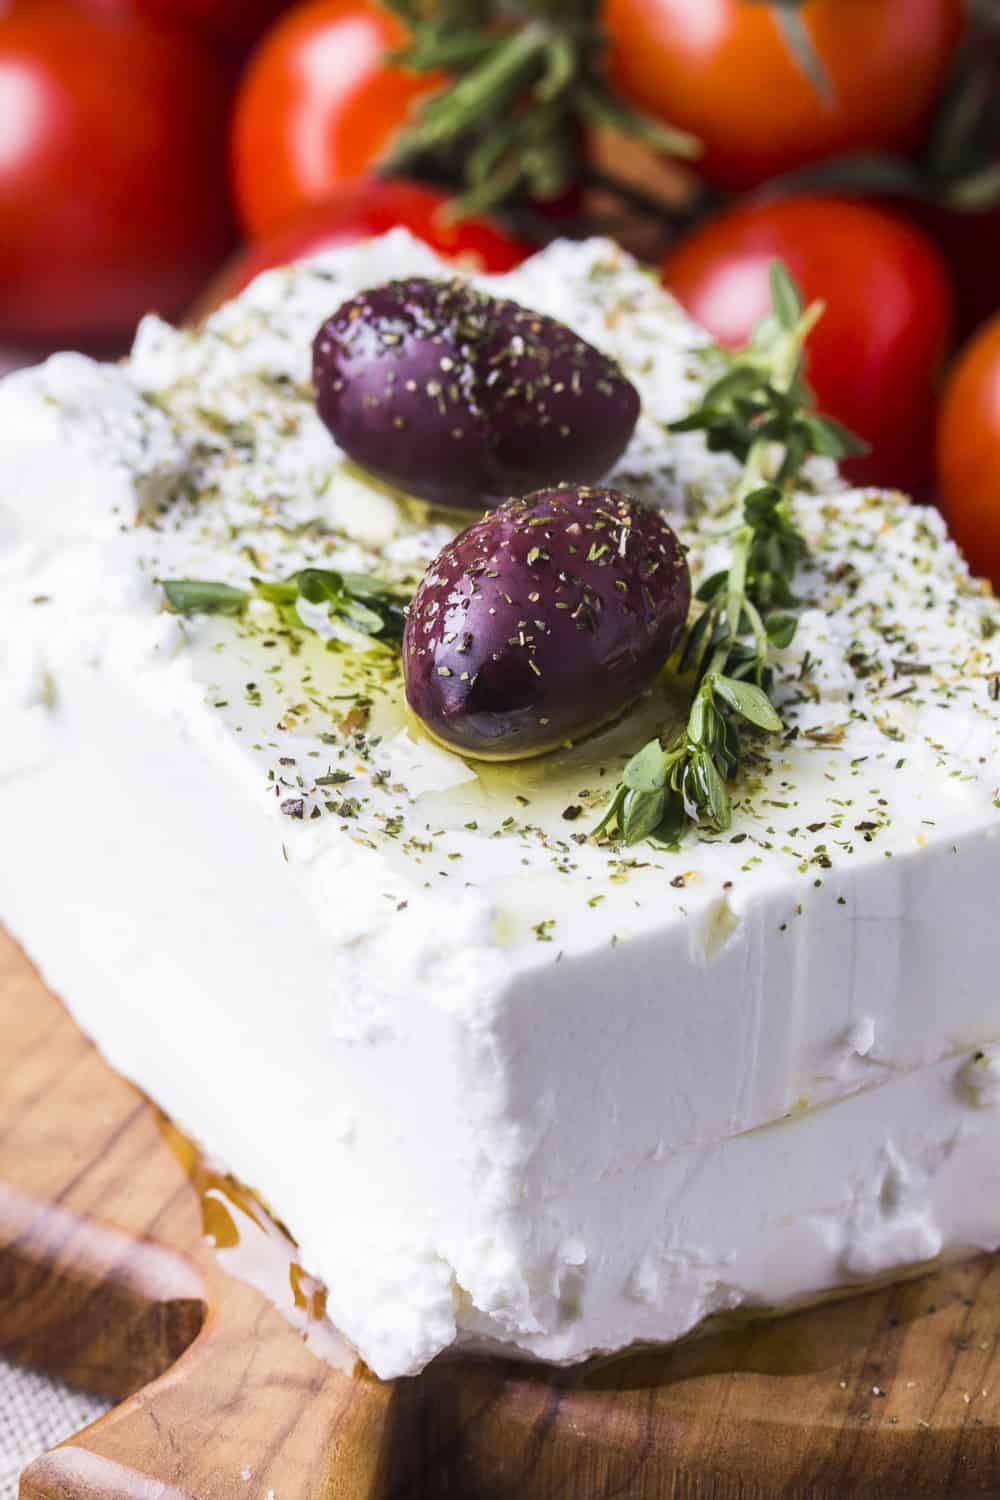 The Risk of Consuming Feta Cheese That Has Gone Bad